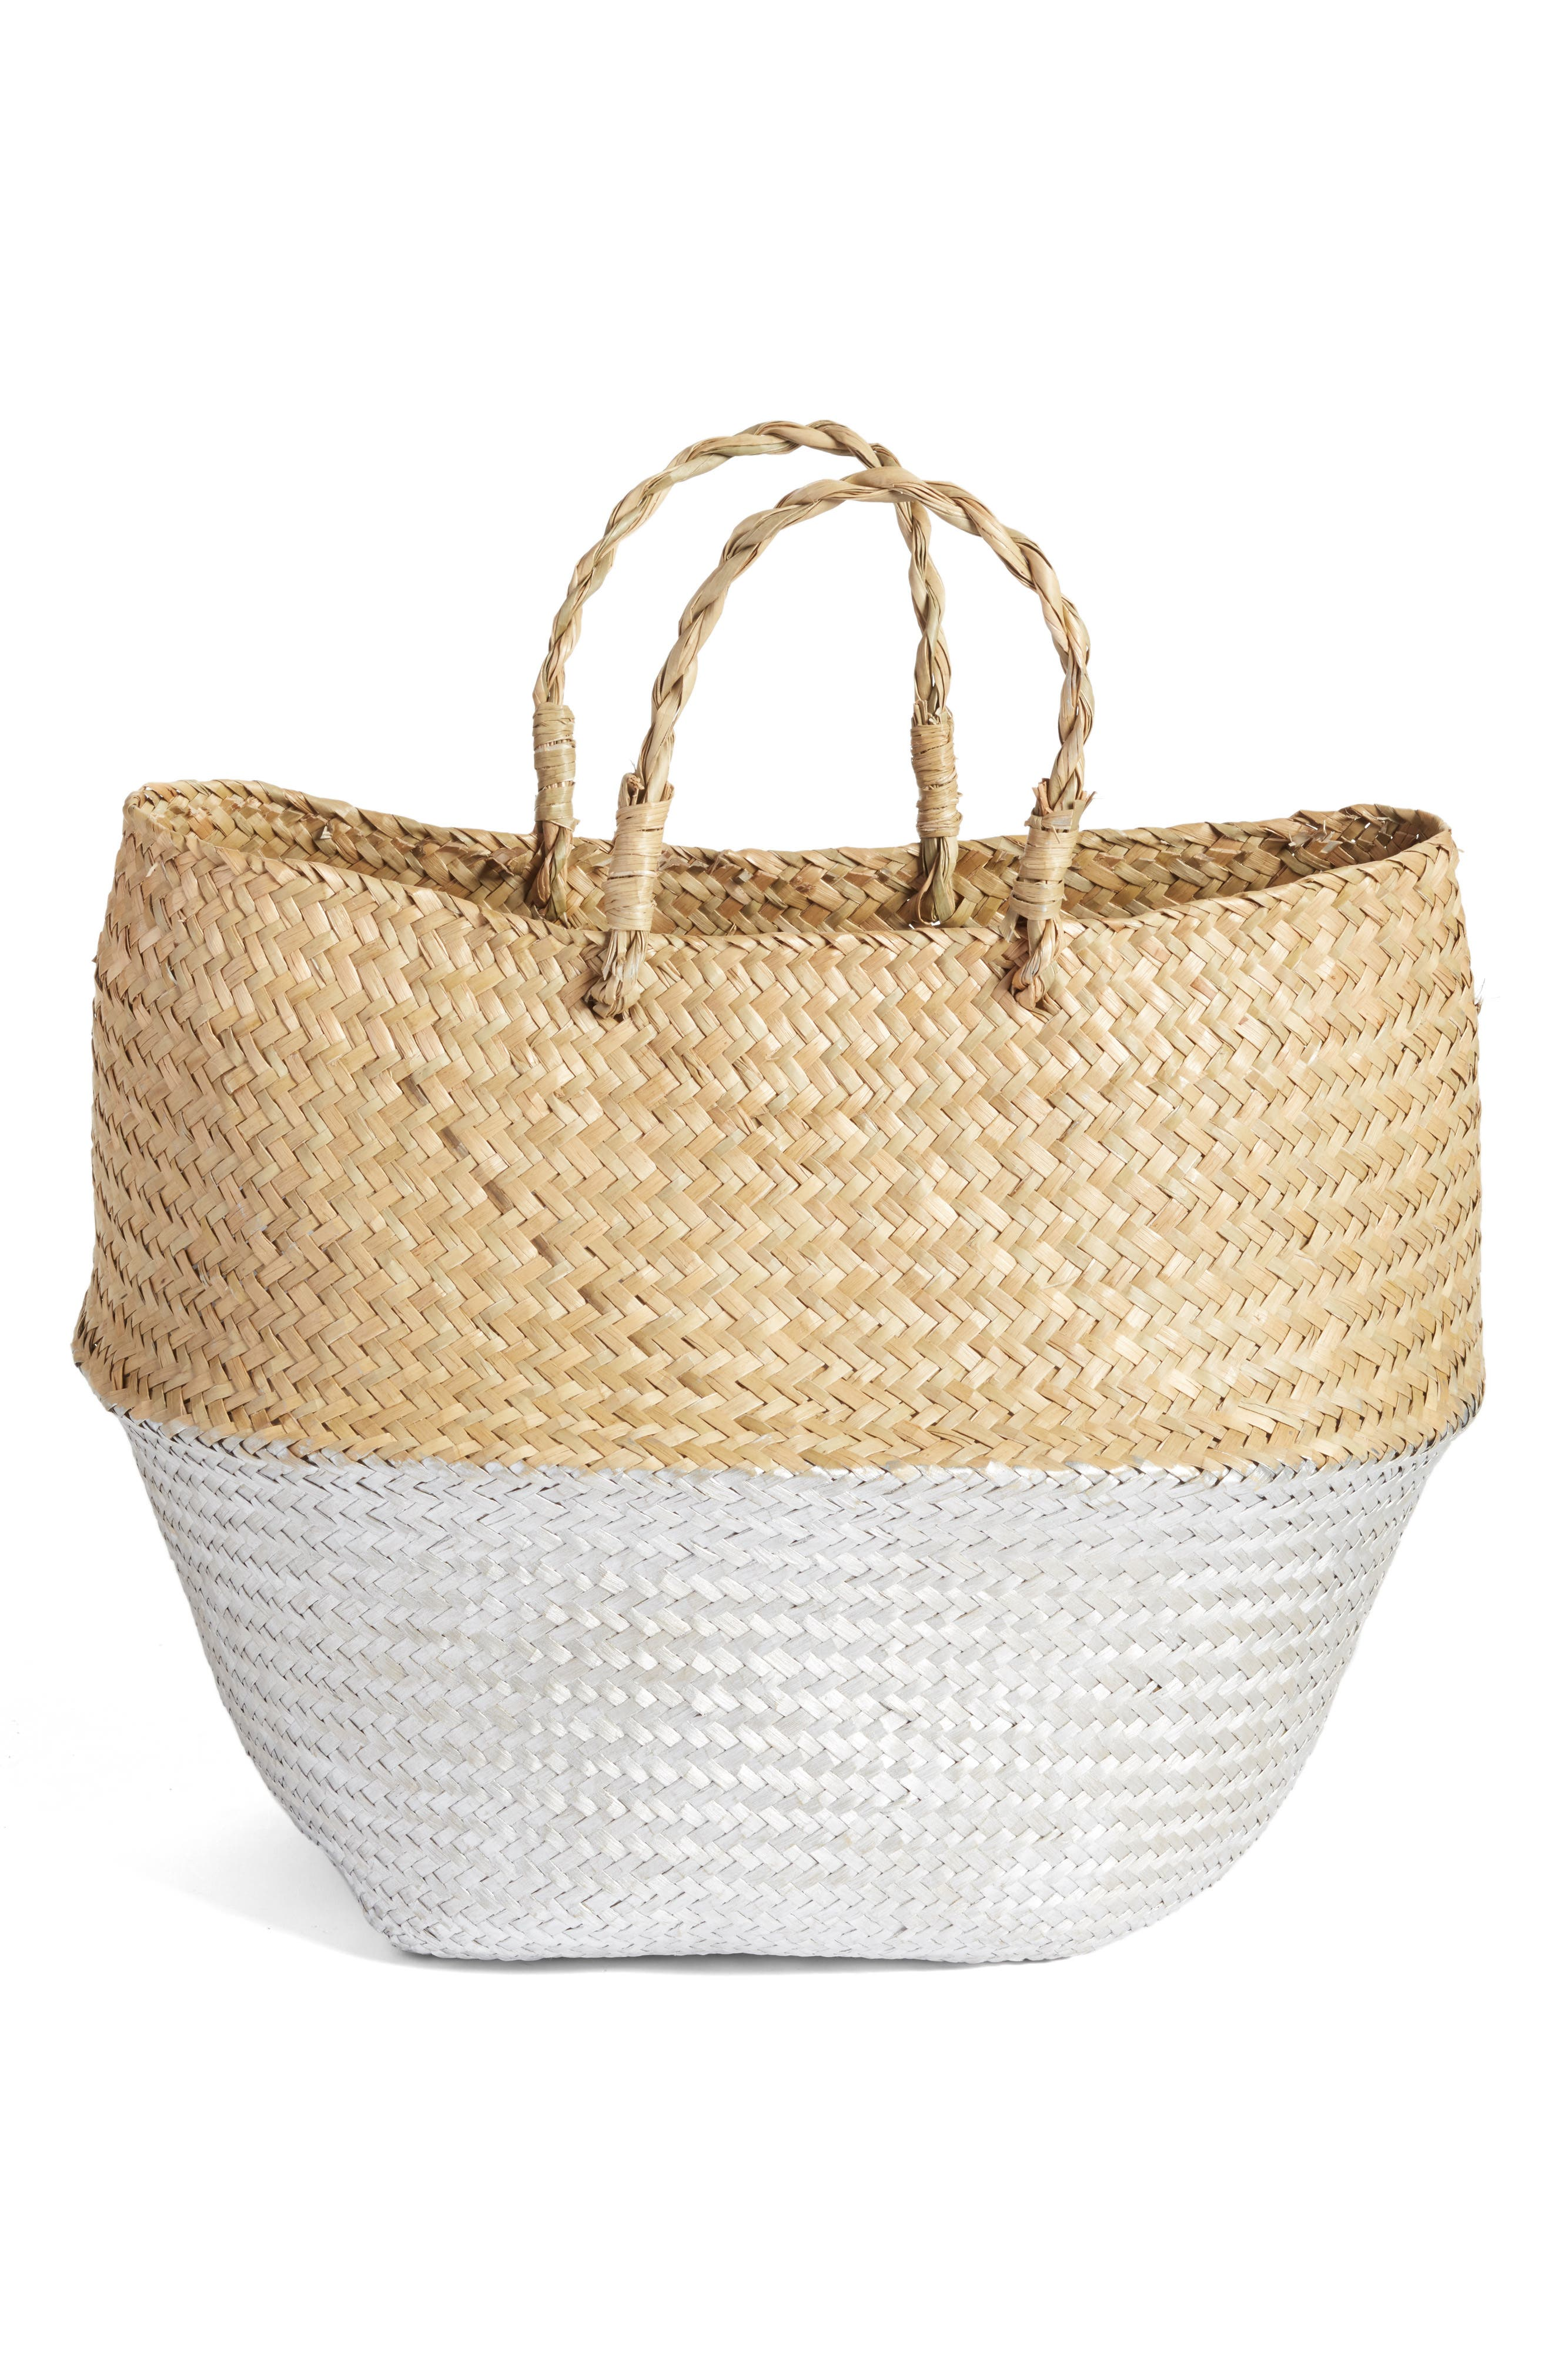 Alternate Image 1 Selected - Levtex Two-Tone Metallic Straw Basket